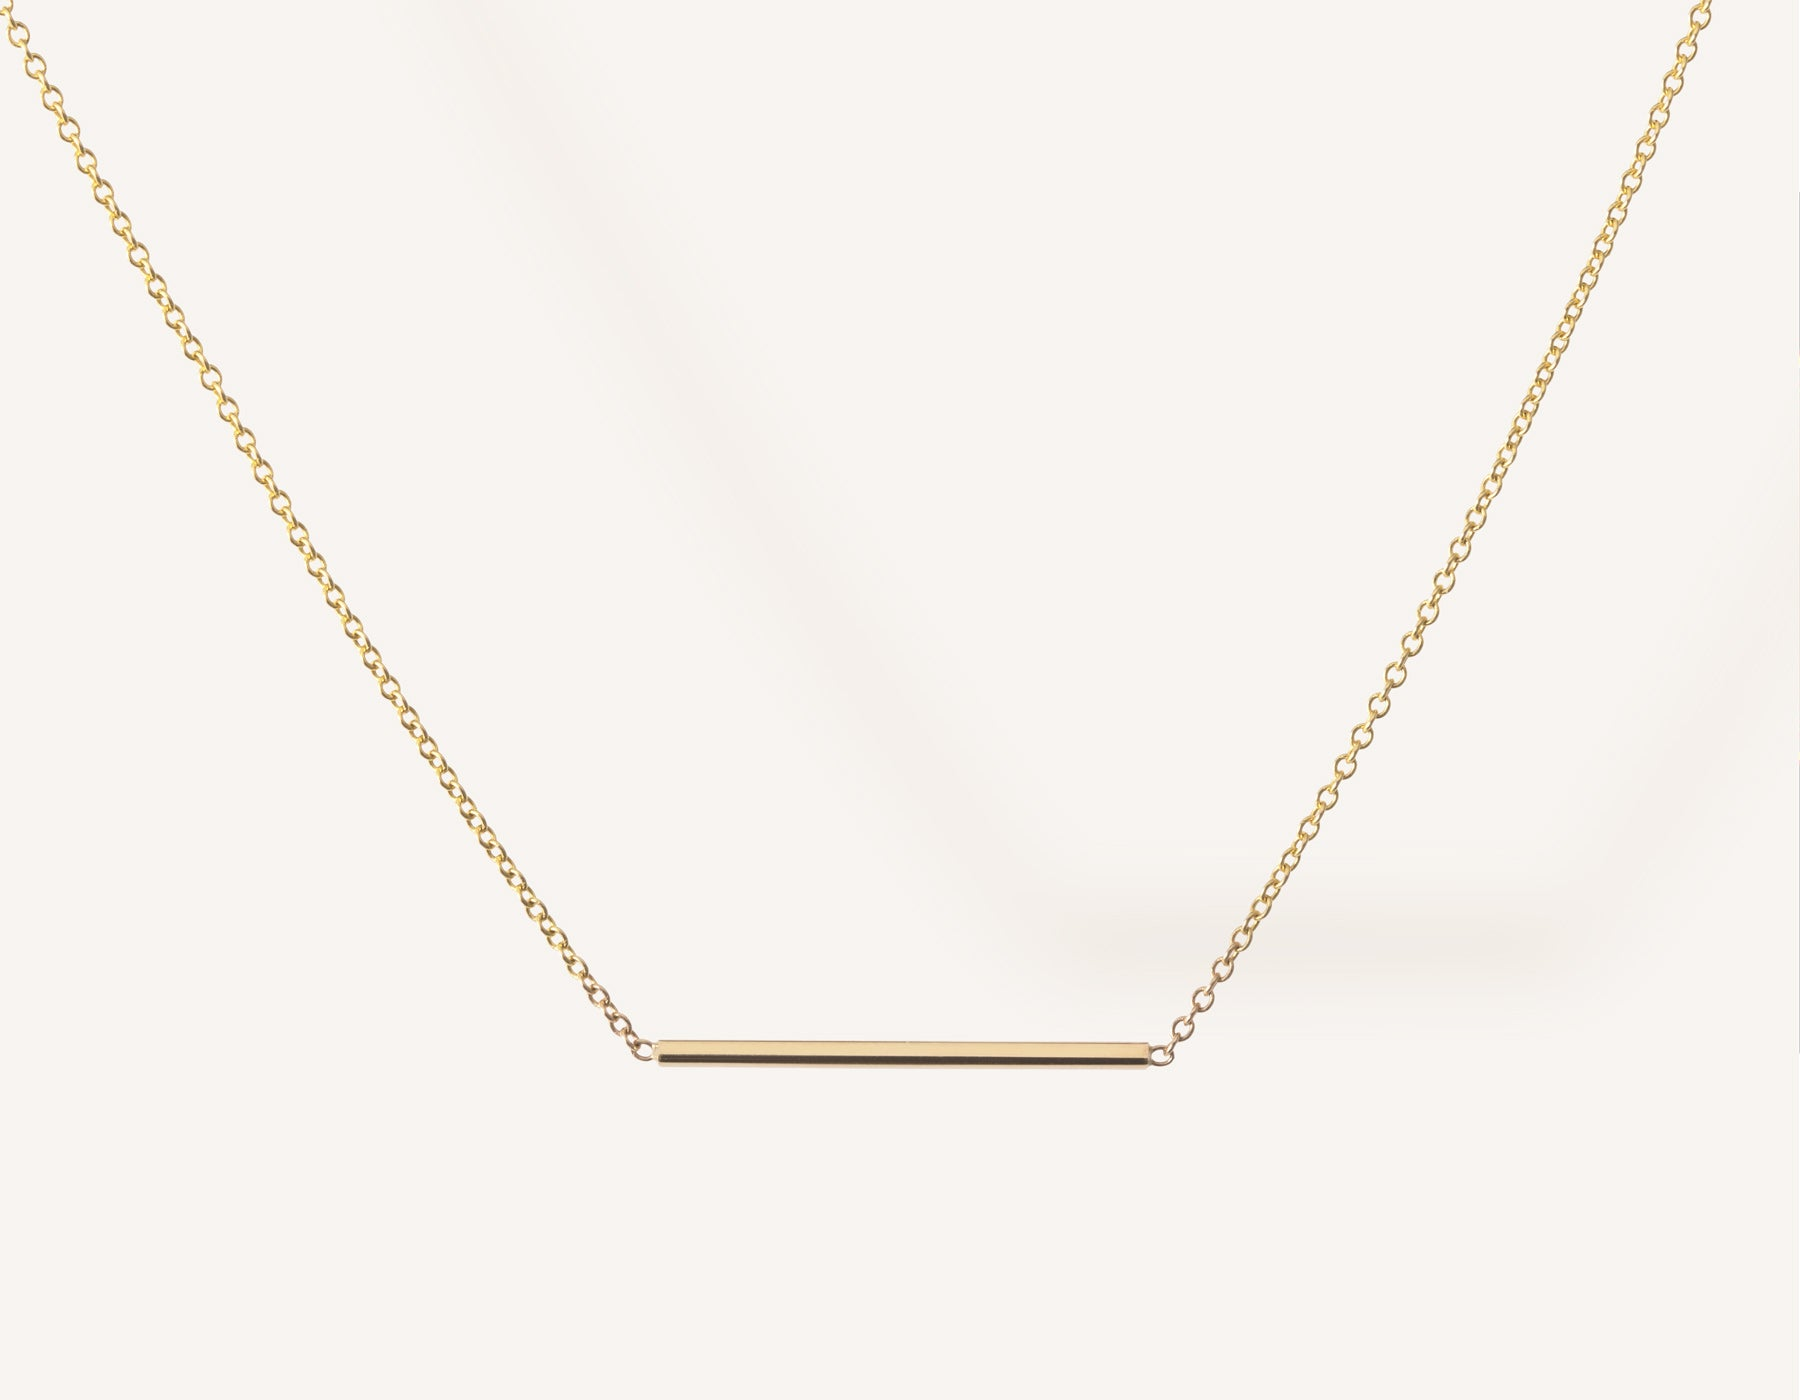 2b35b0697e2 Simple classic Line Necklace 14k solid gold small rectangular bar thin chain  spring ring clasp Vrai